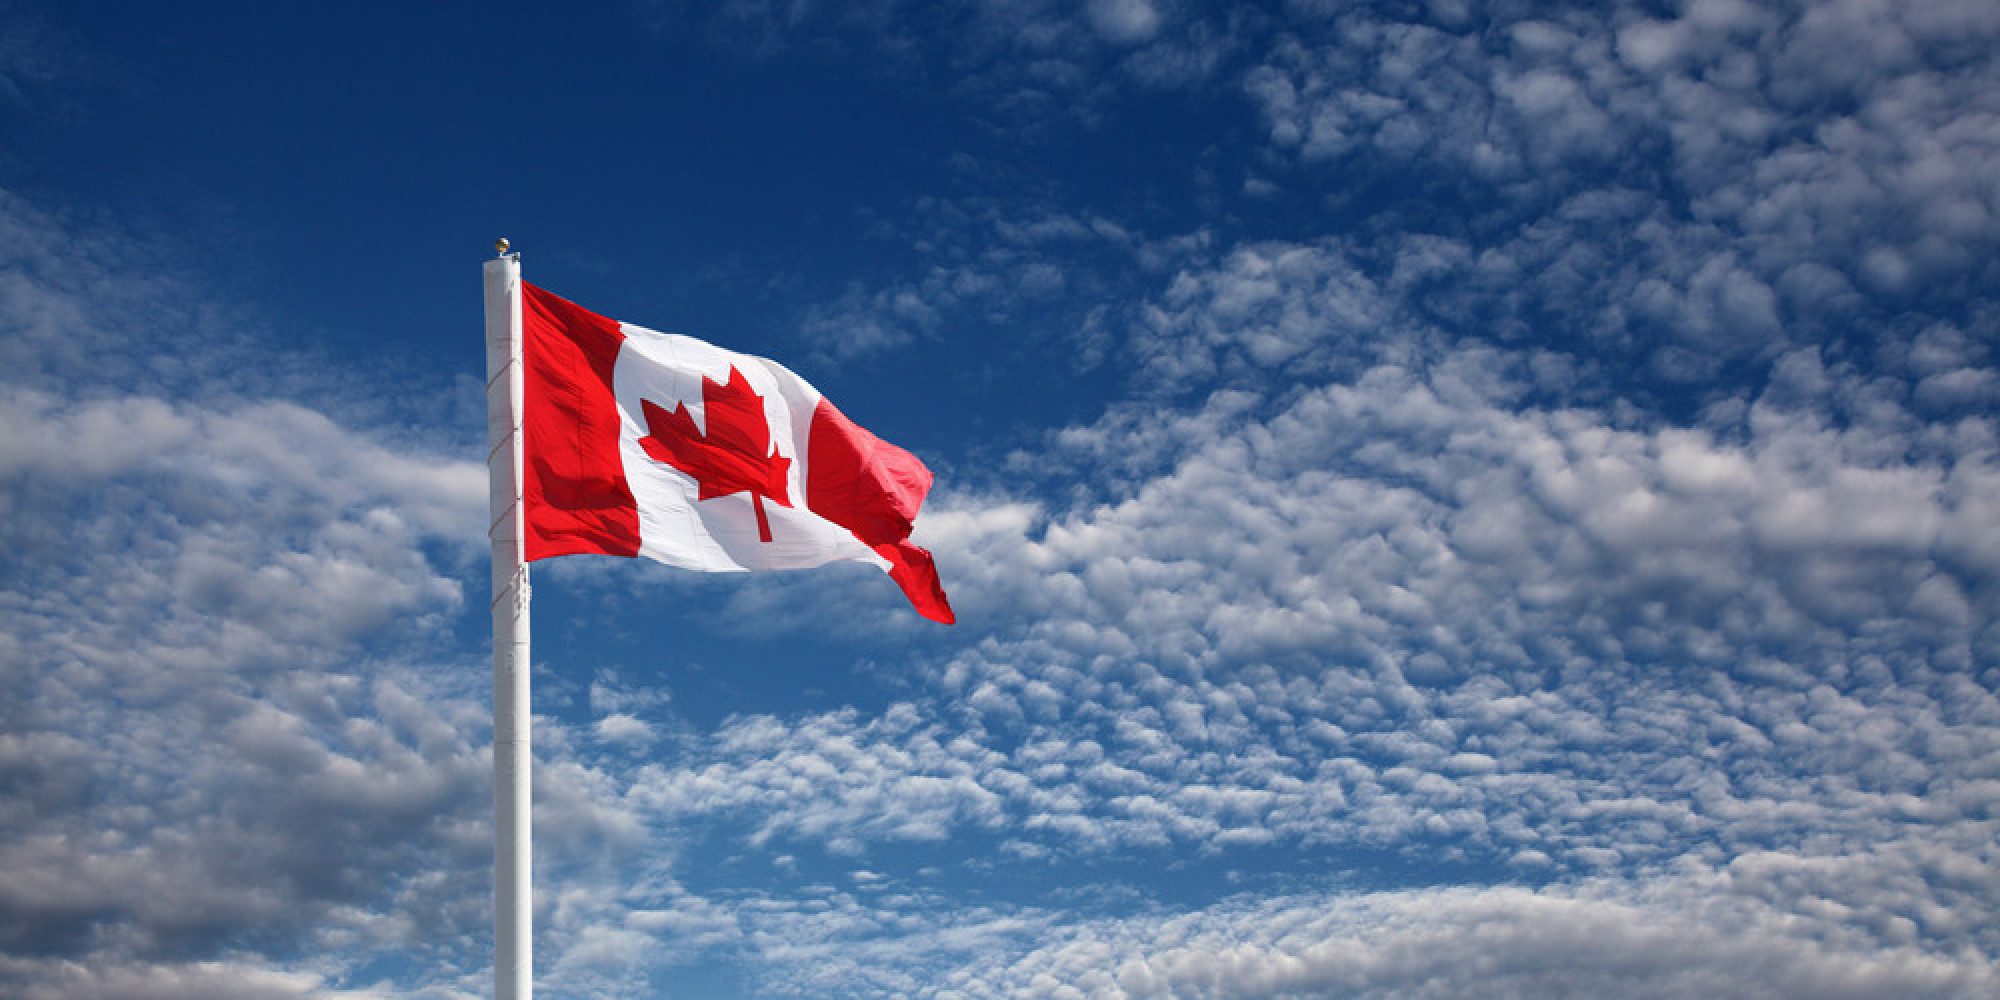 Order essay online cheap a flag for canada